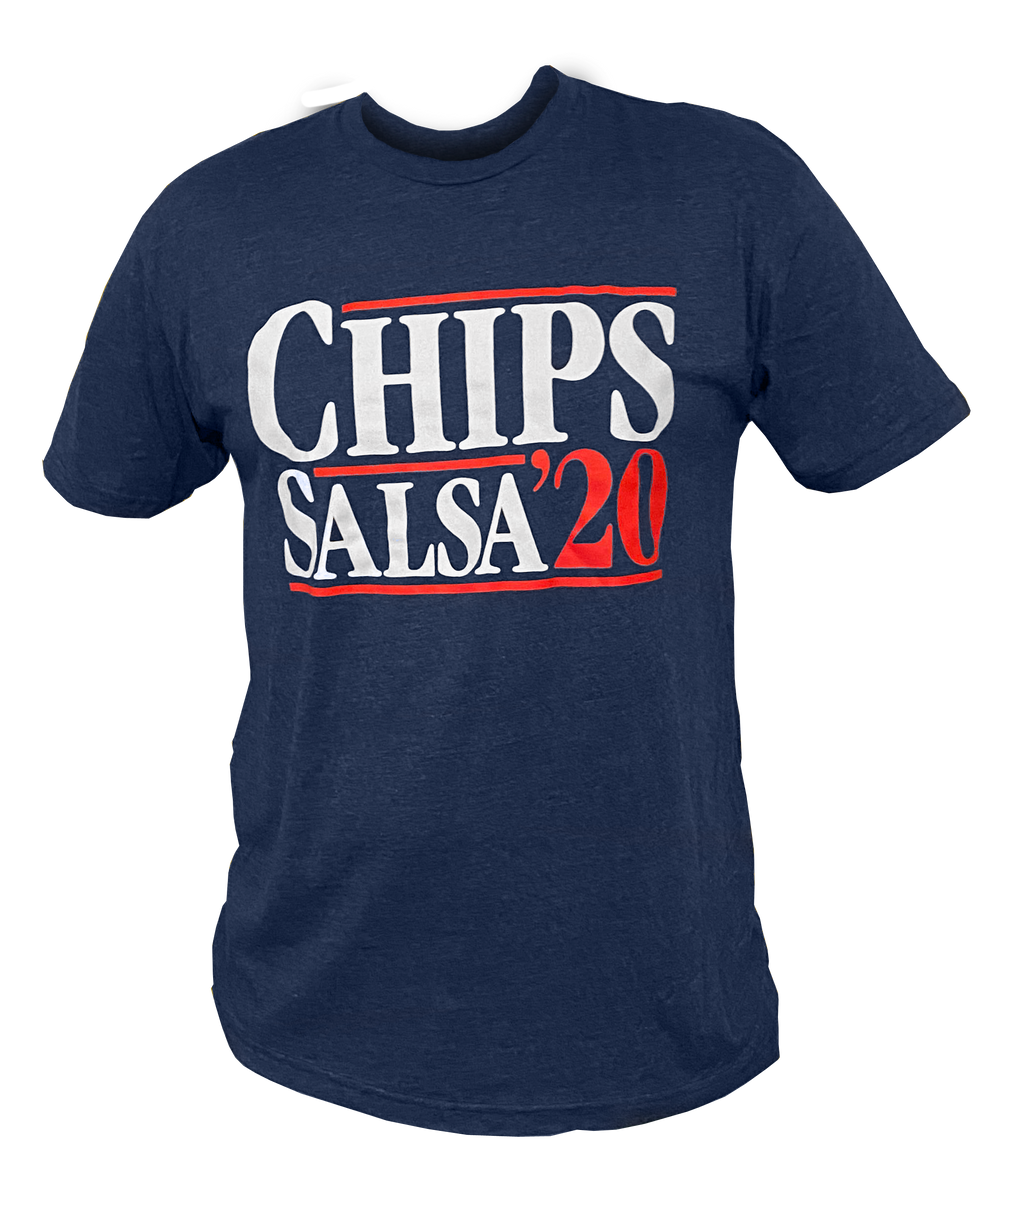 Chips & Salsa '20 Tee Navy